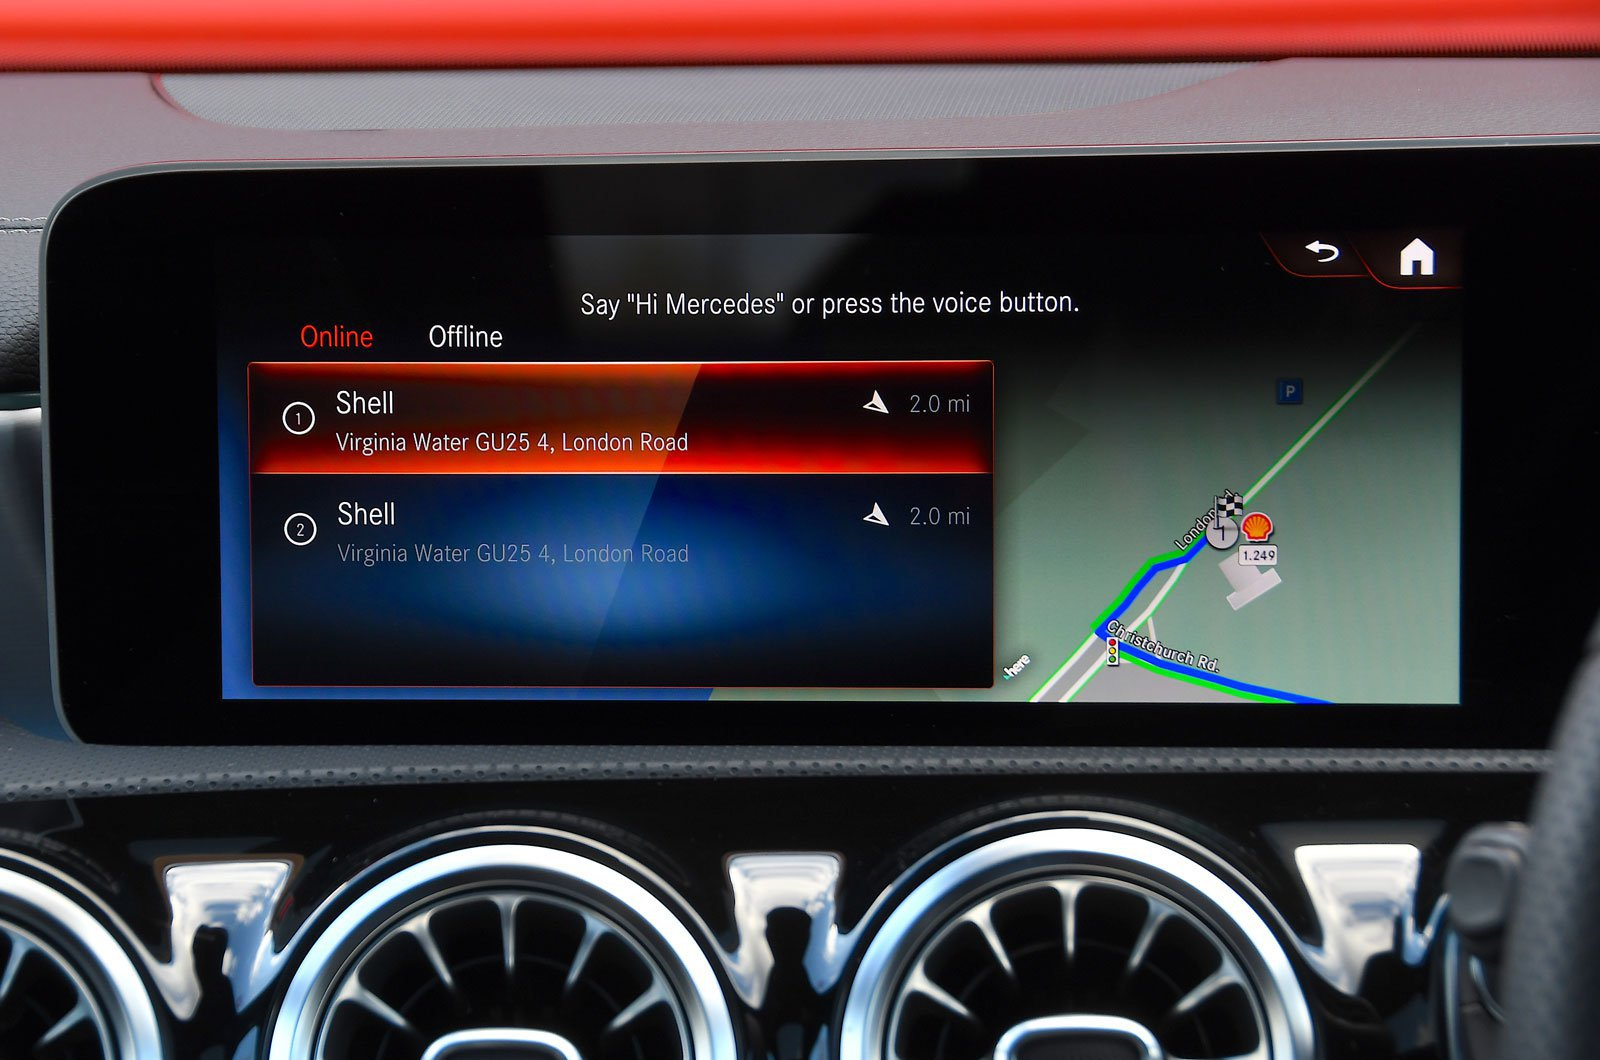 Mercedes-Benz infotainment screen